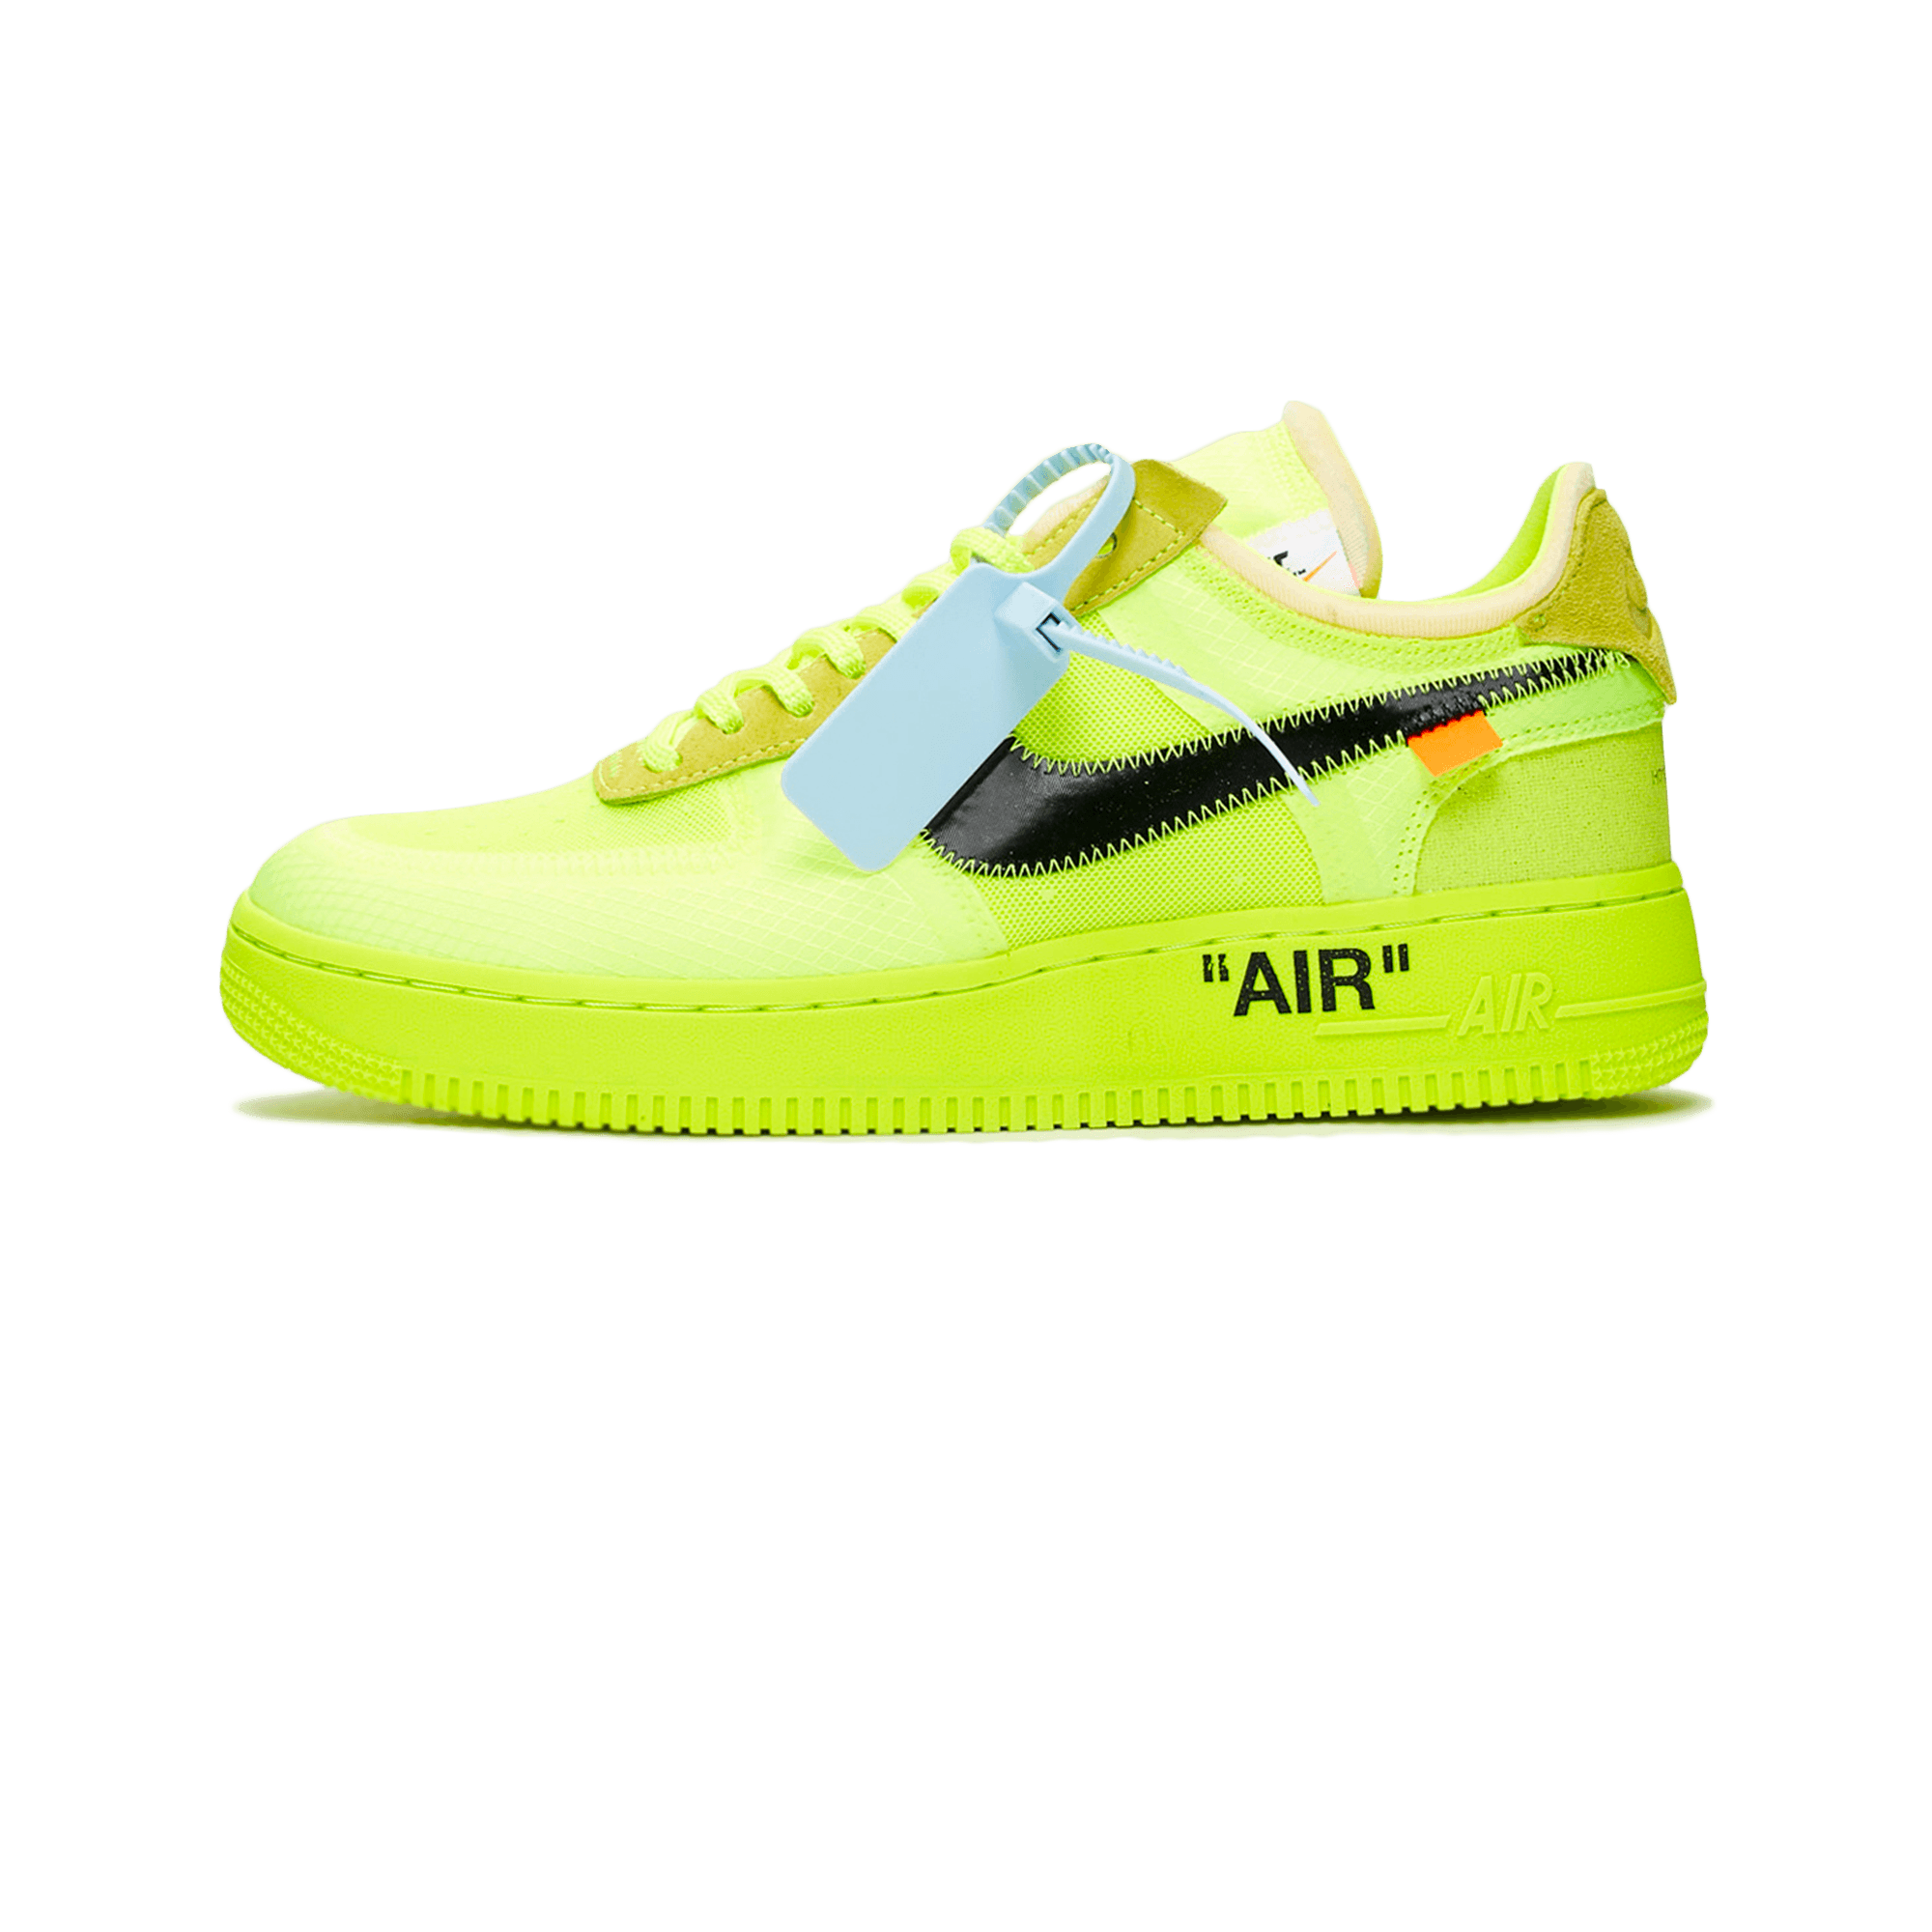 Air Force 1 Low x Off White volt / black